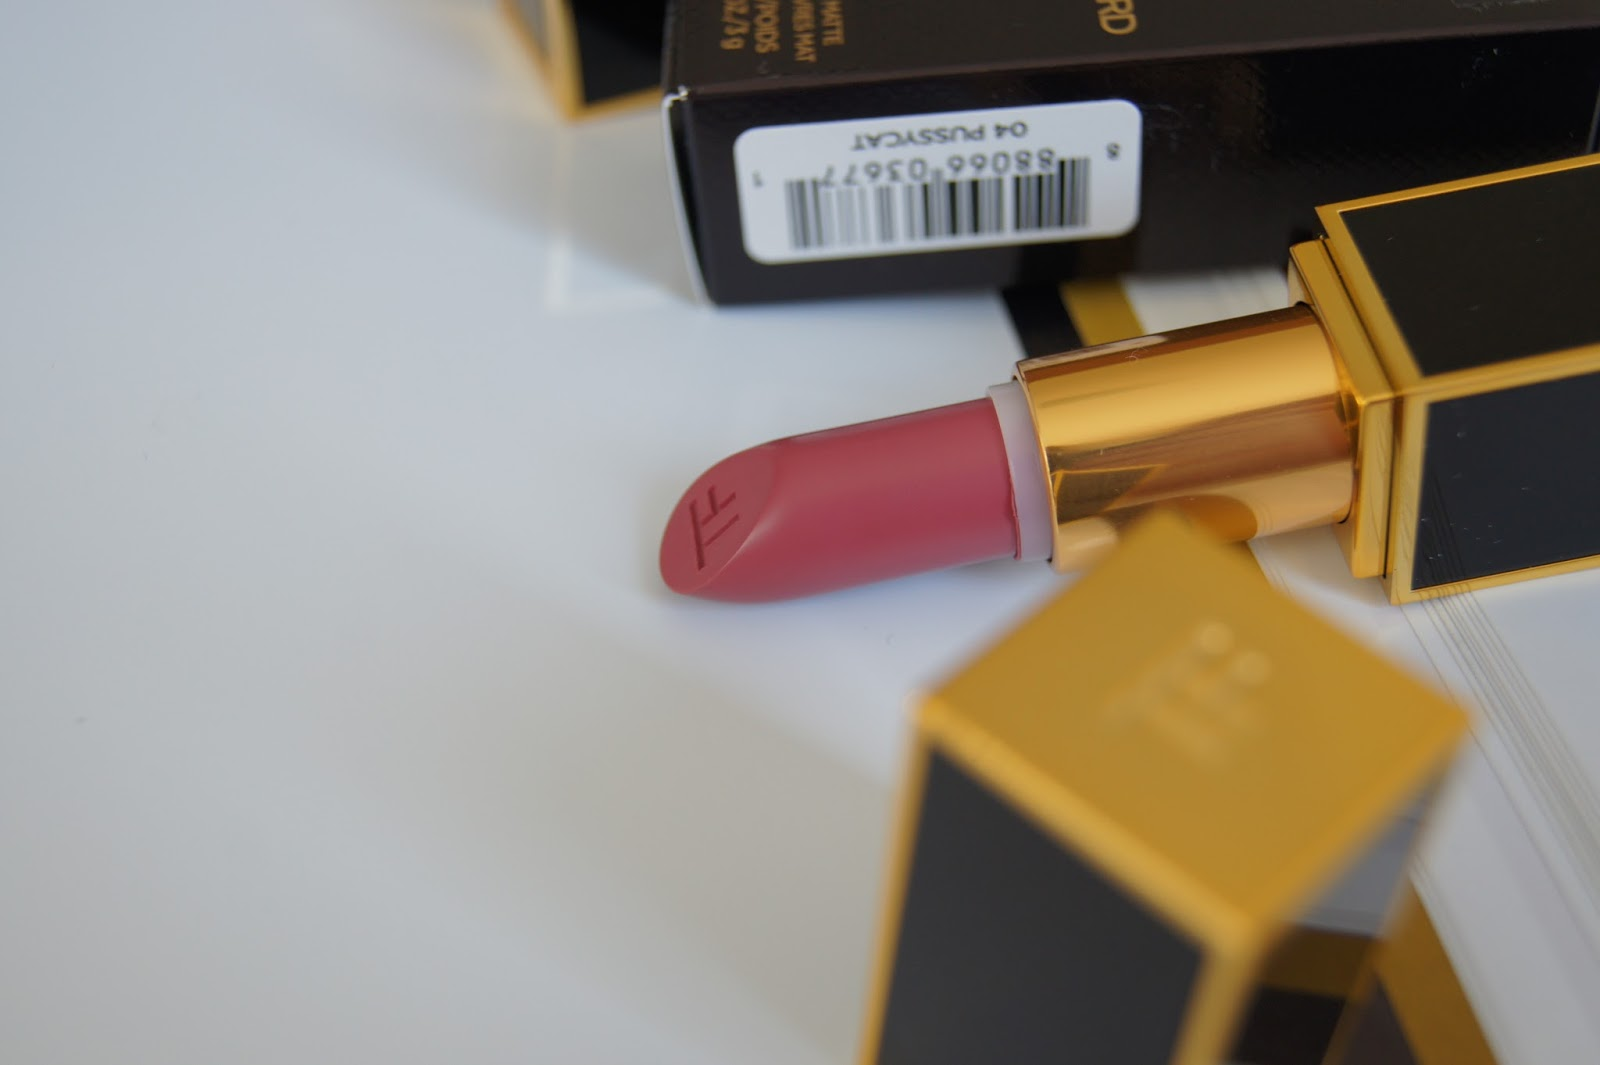 Tom Ford Matte lipsticks Pussycat